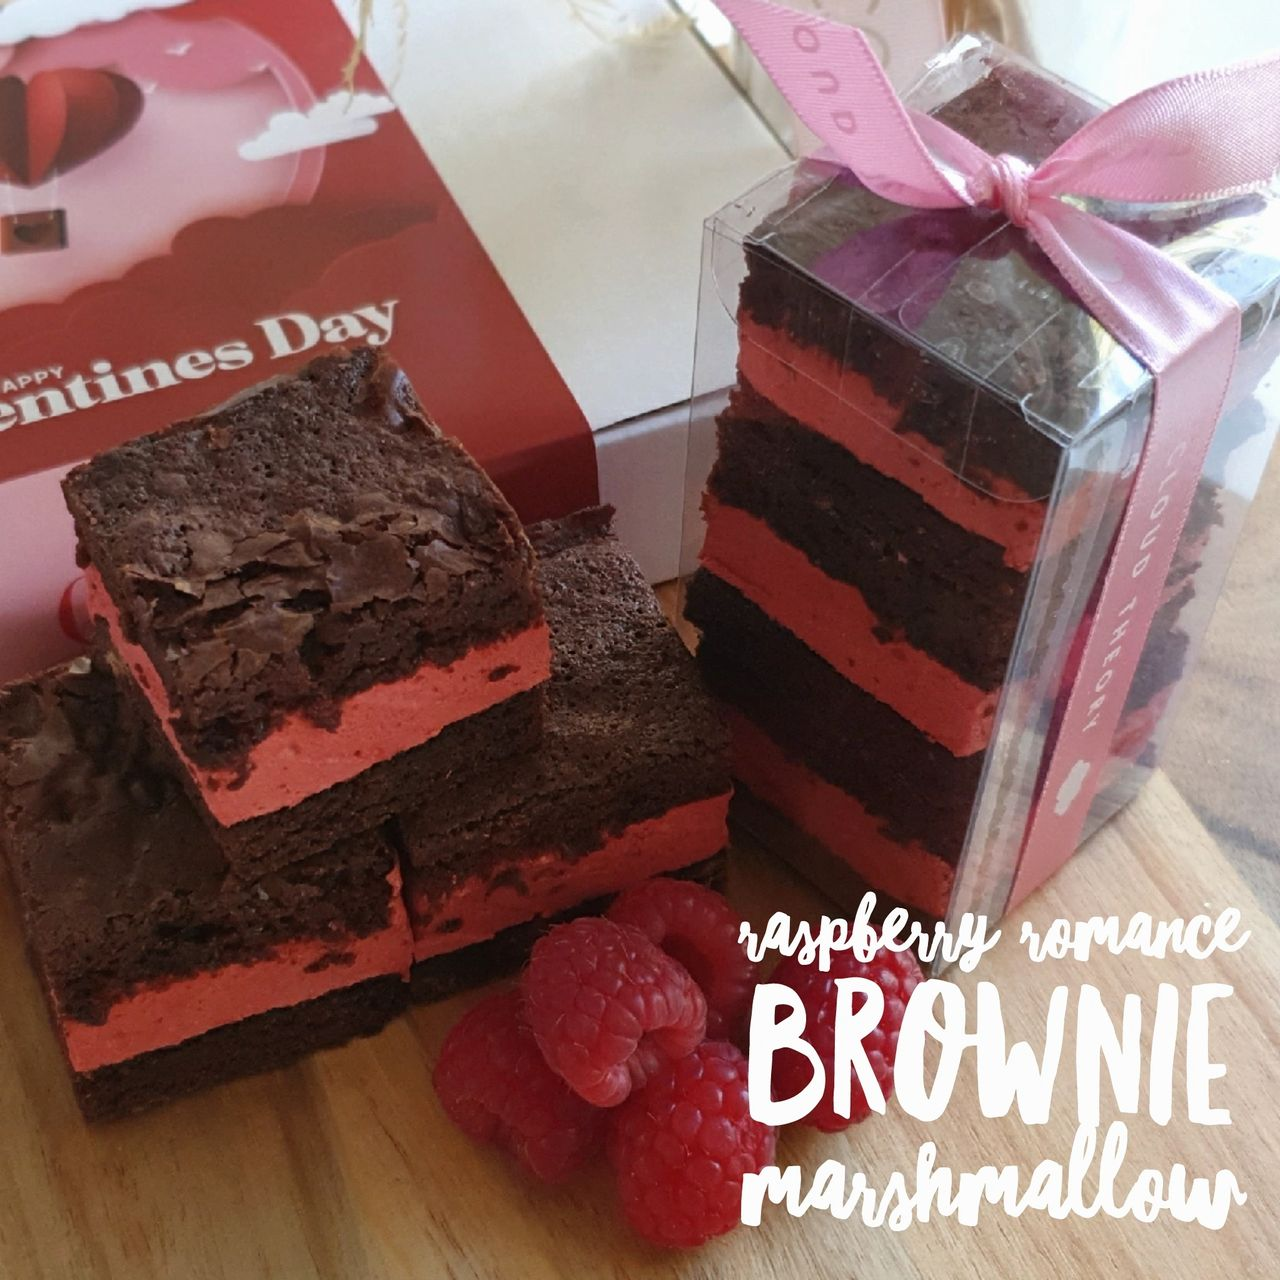 Raspberry Romance Marshmallow Brownie -A match made in heaven! We have paired raspberry flavoured marshmallows with our decadent brownie base to create one romantic treat!